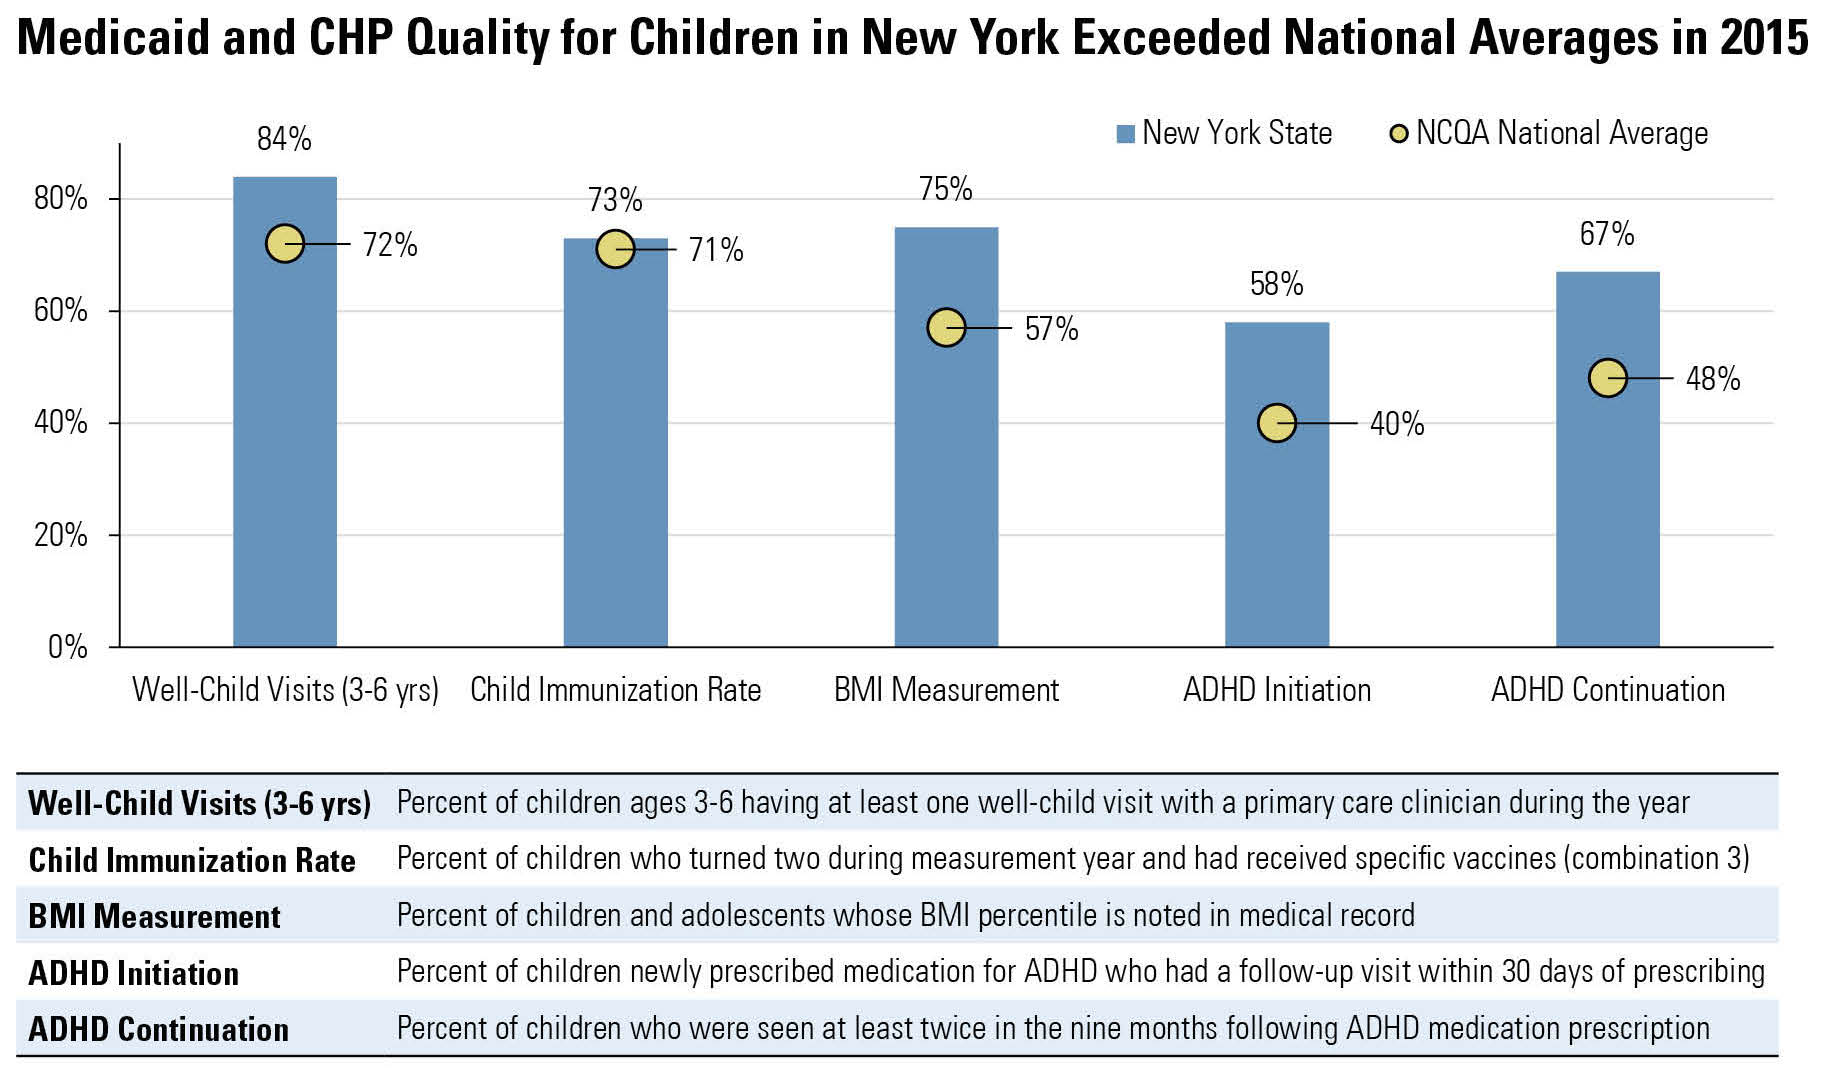 HealthWatch: New York-High-Quality Health Care for Children